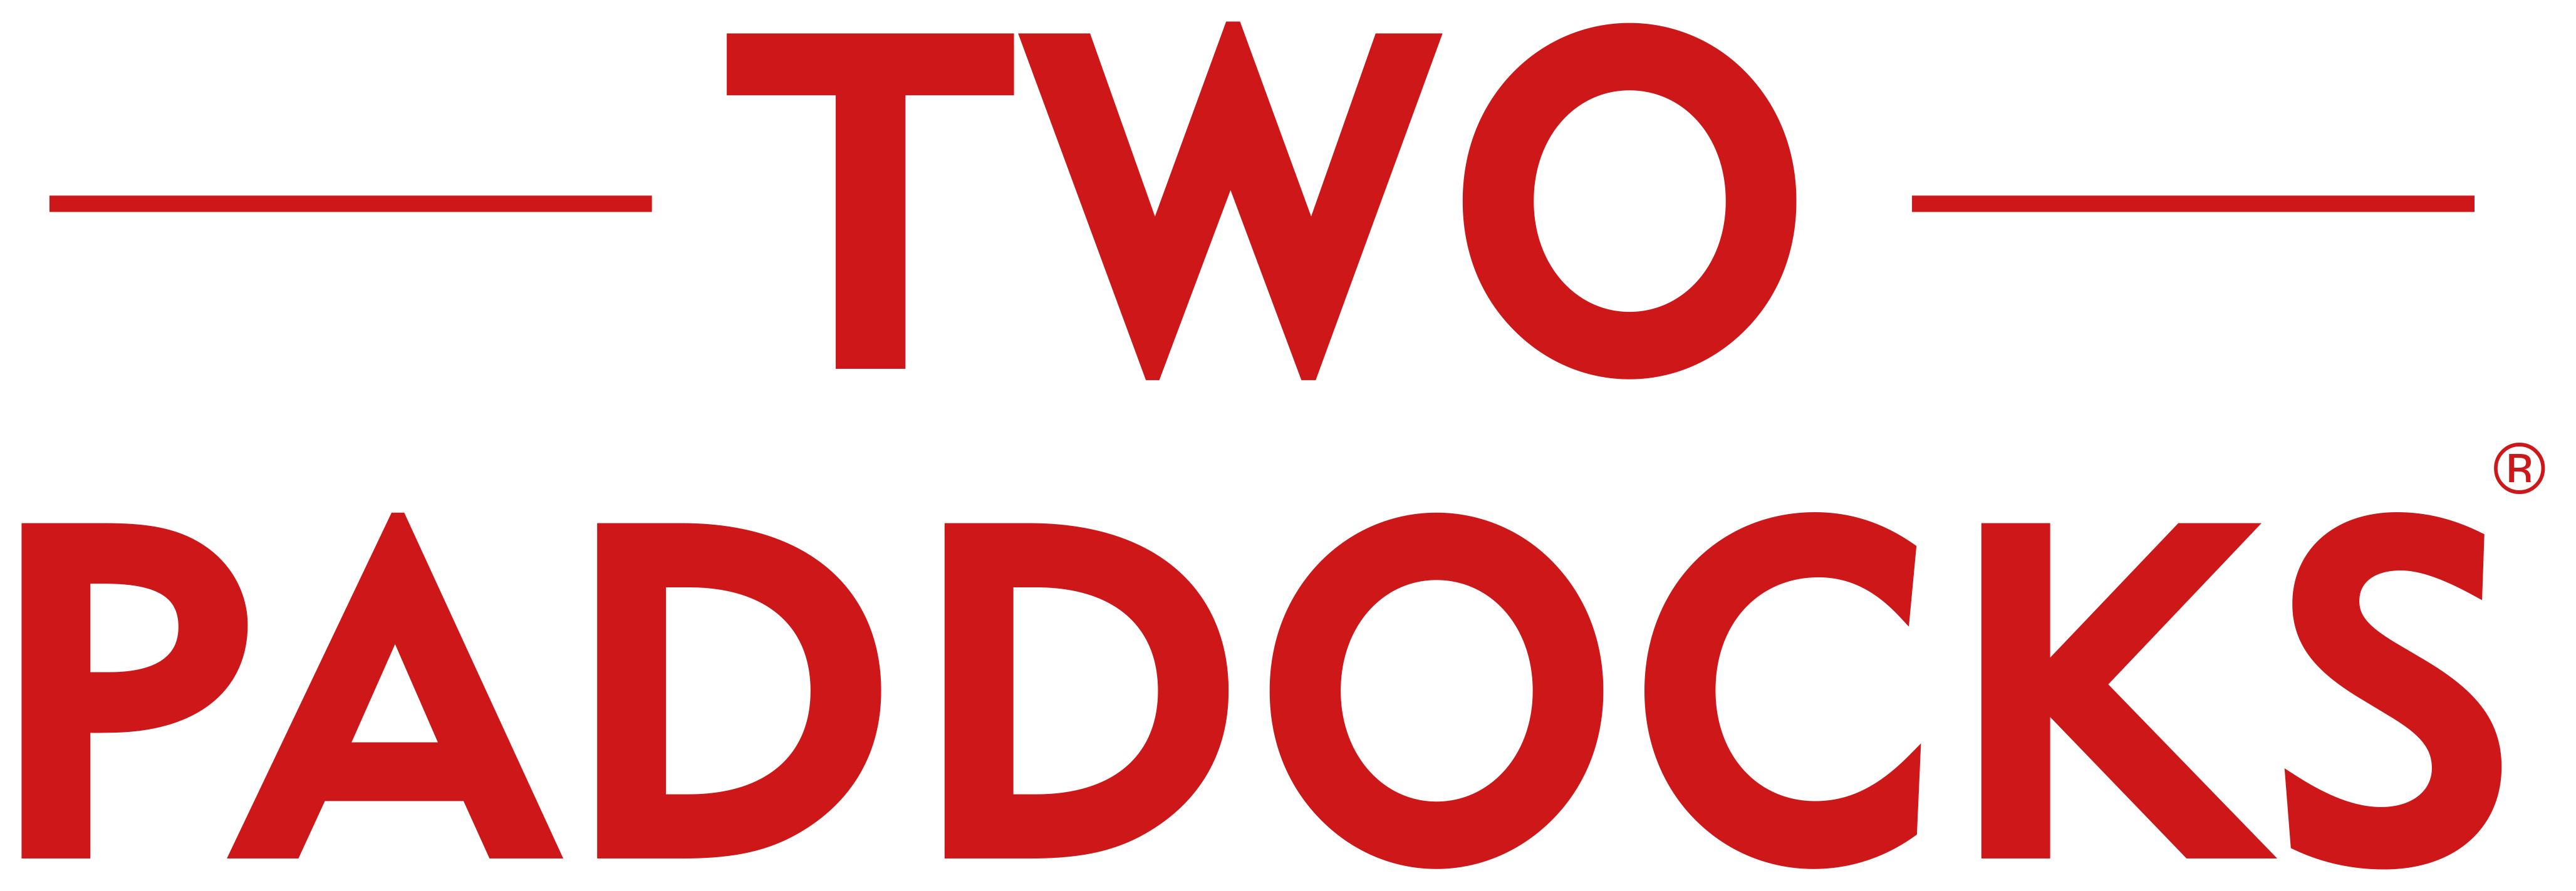 TWO PADDOCKS LOGO